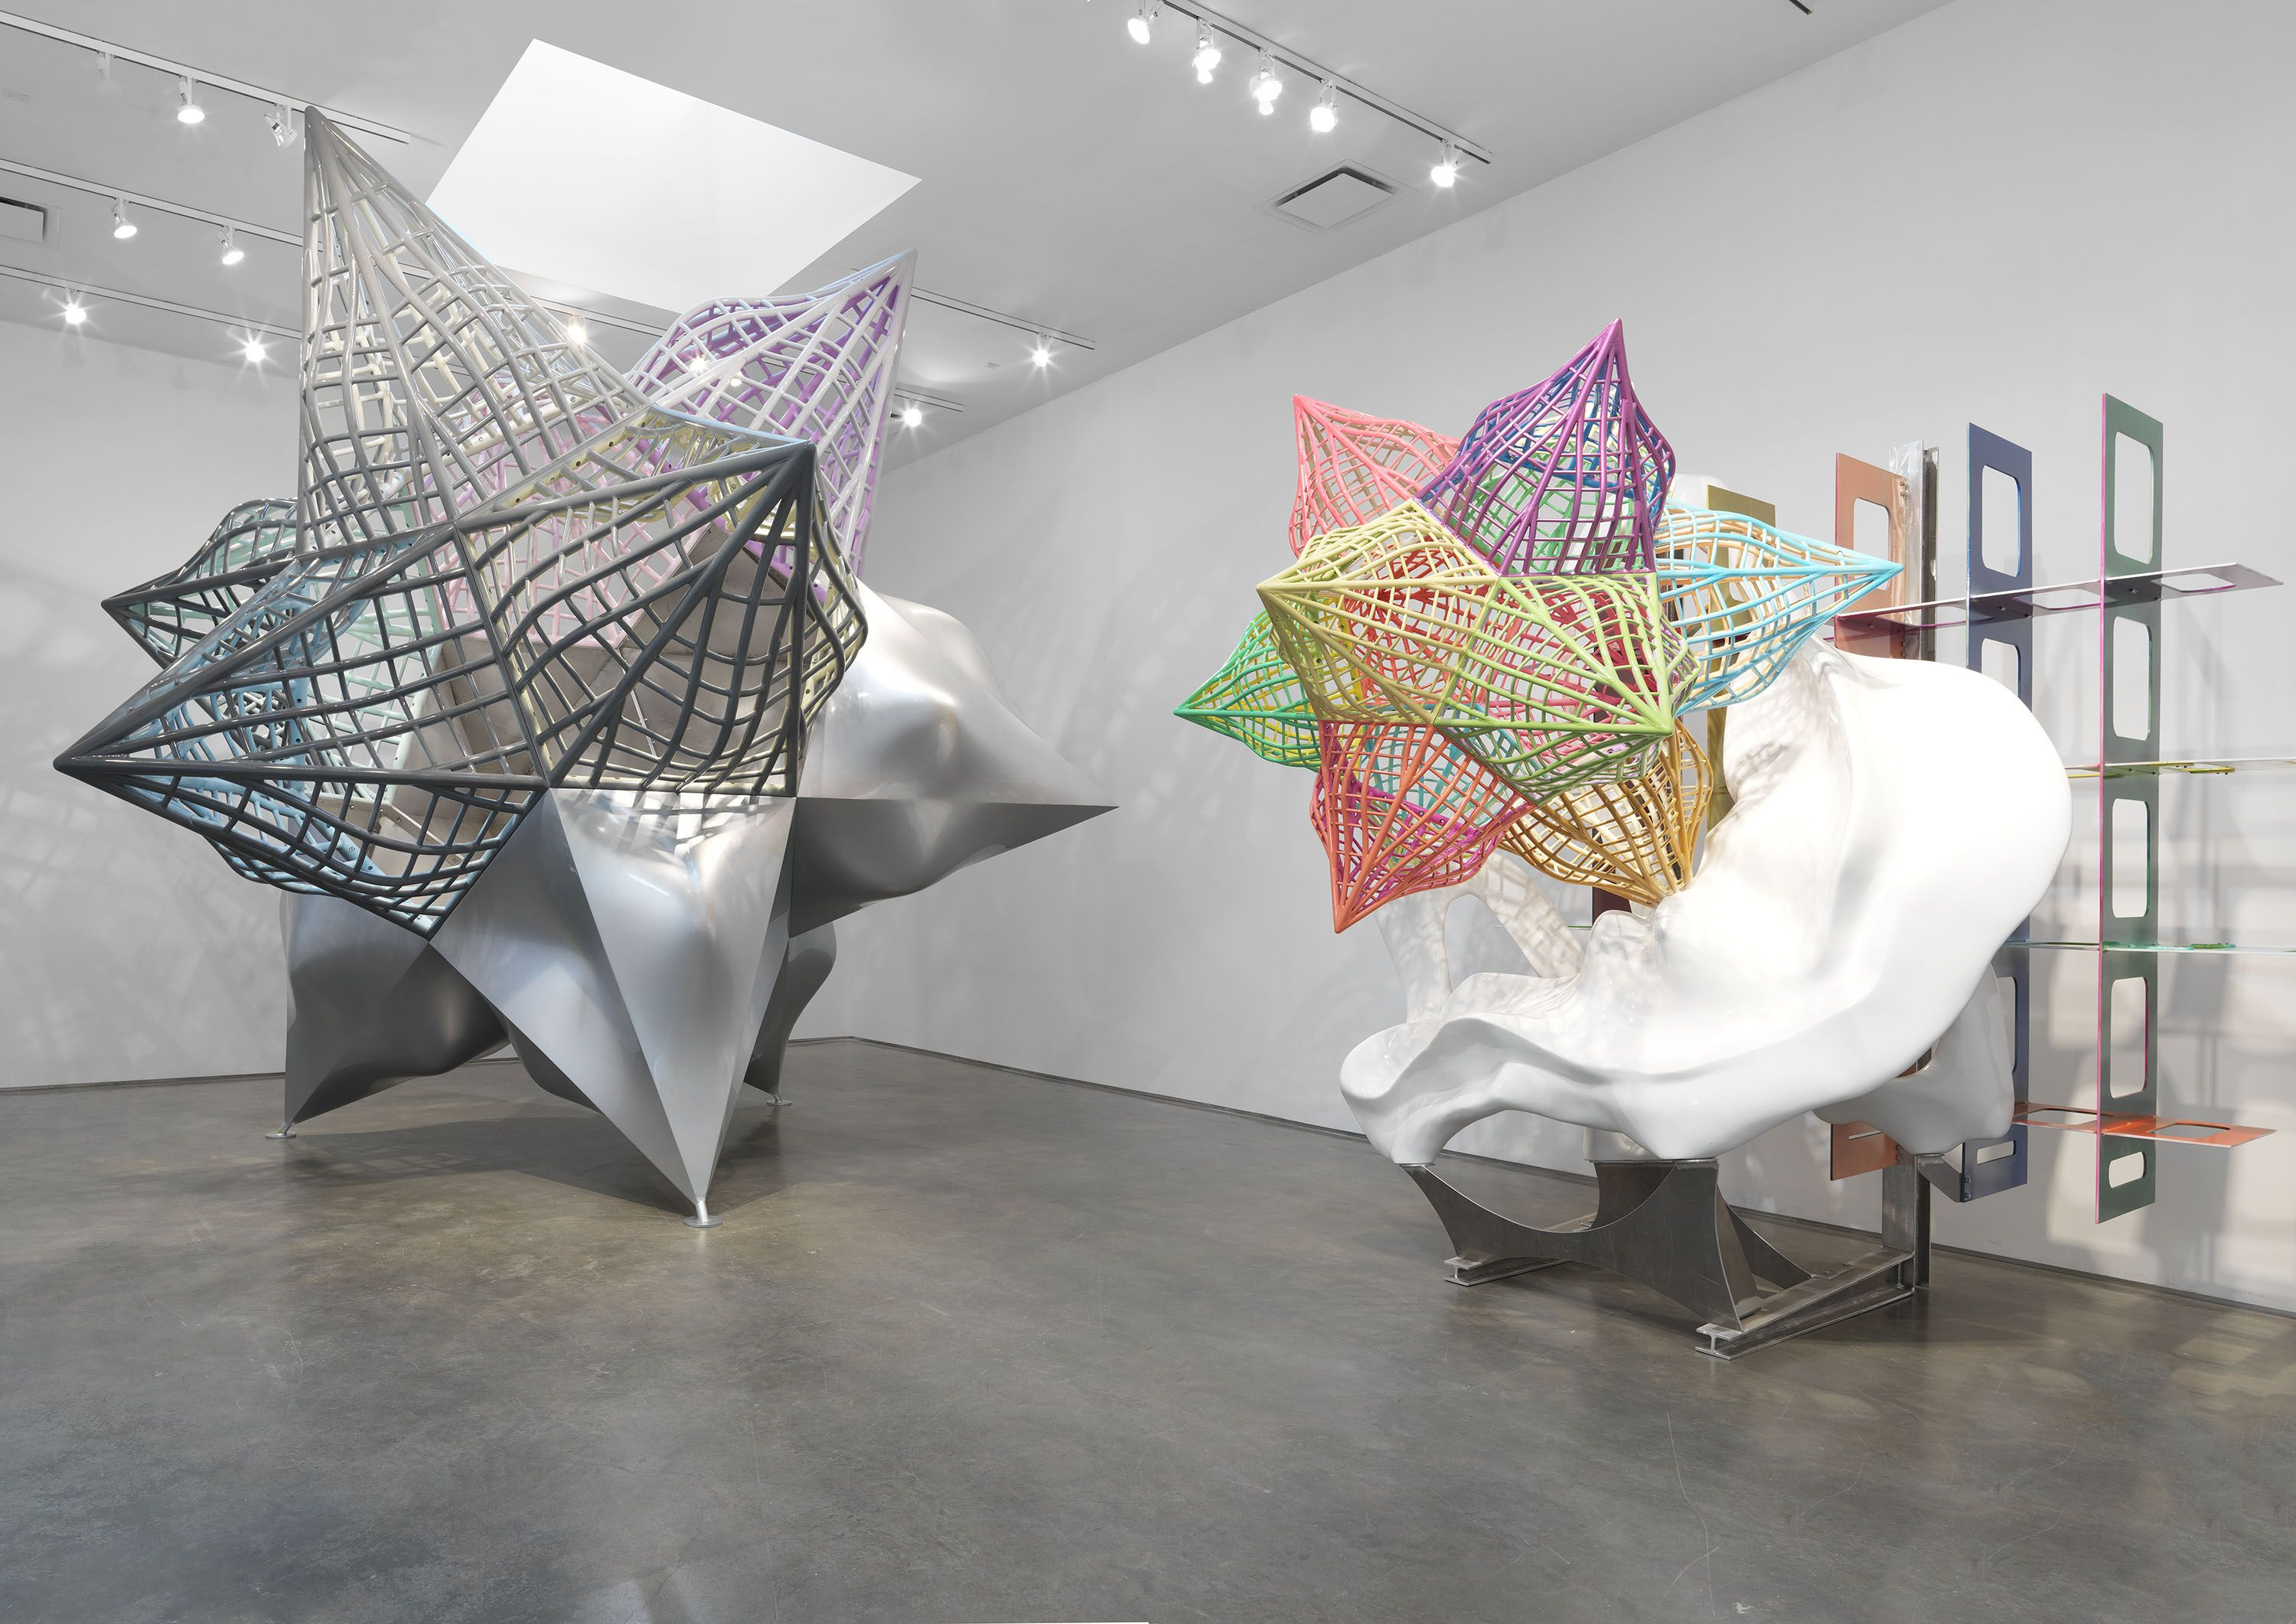 art galleries Be Inspired By The Wonders Of These Contemporary Art Galleries Marianne Boesky Gallery